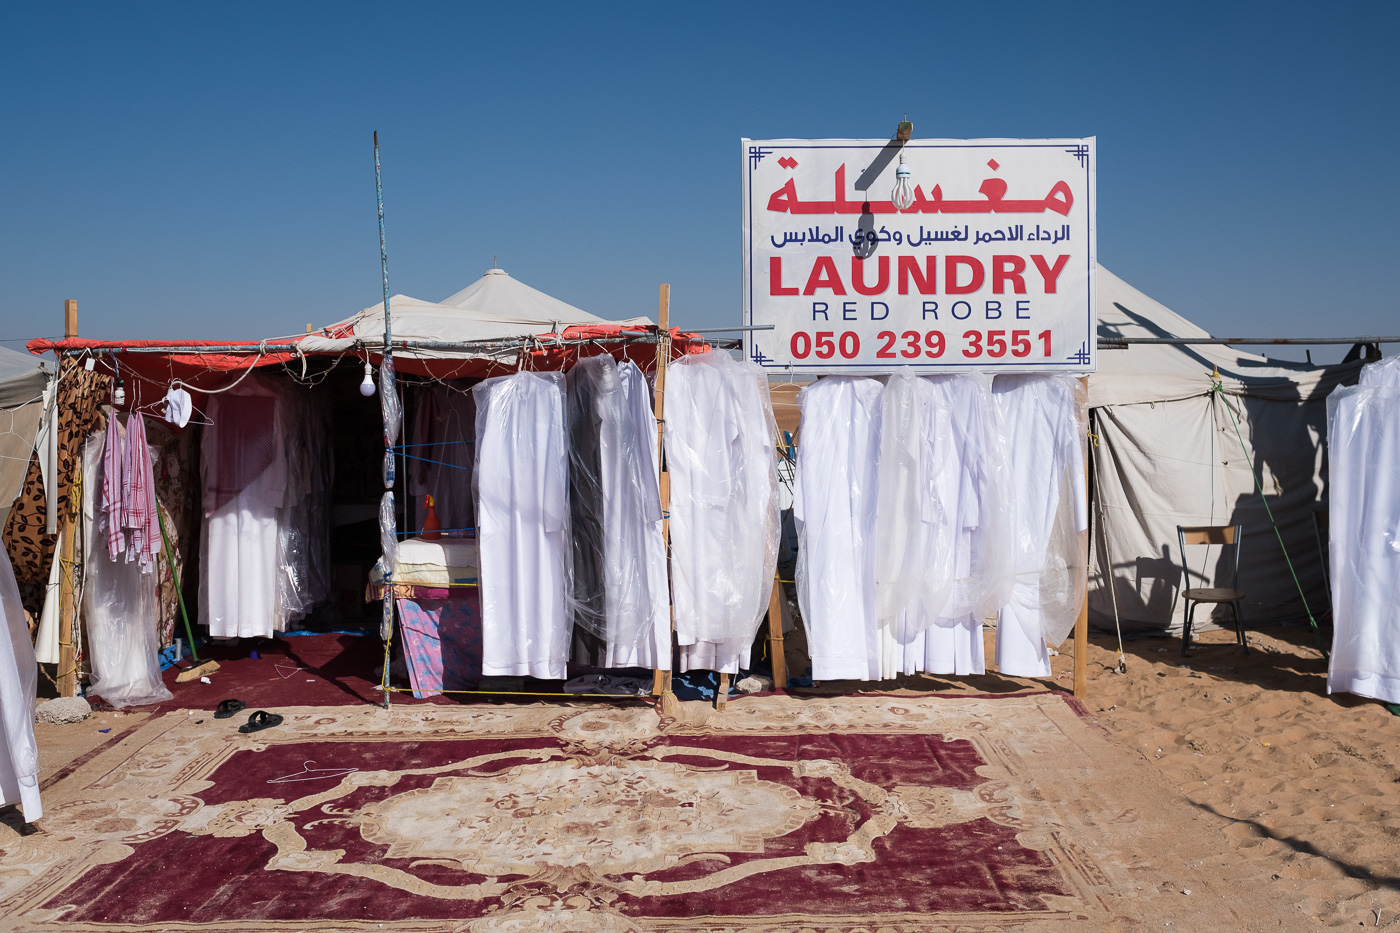 The Camel Festival shops #6